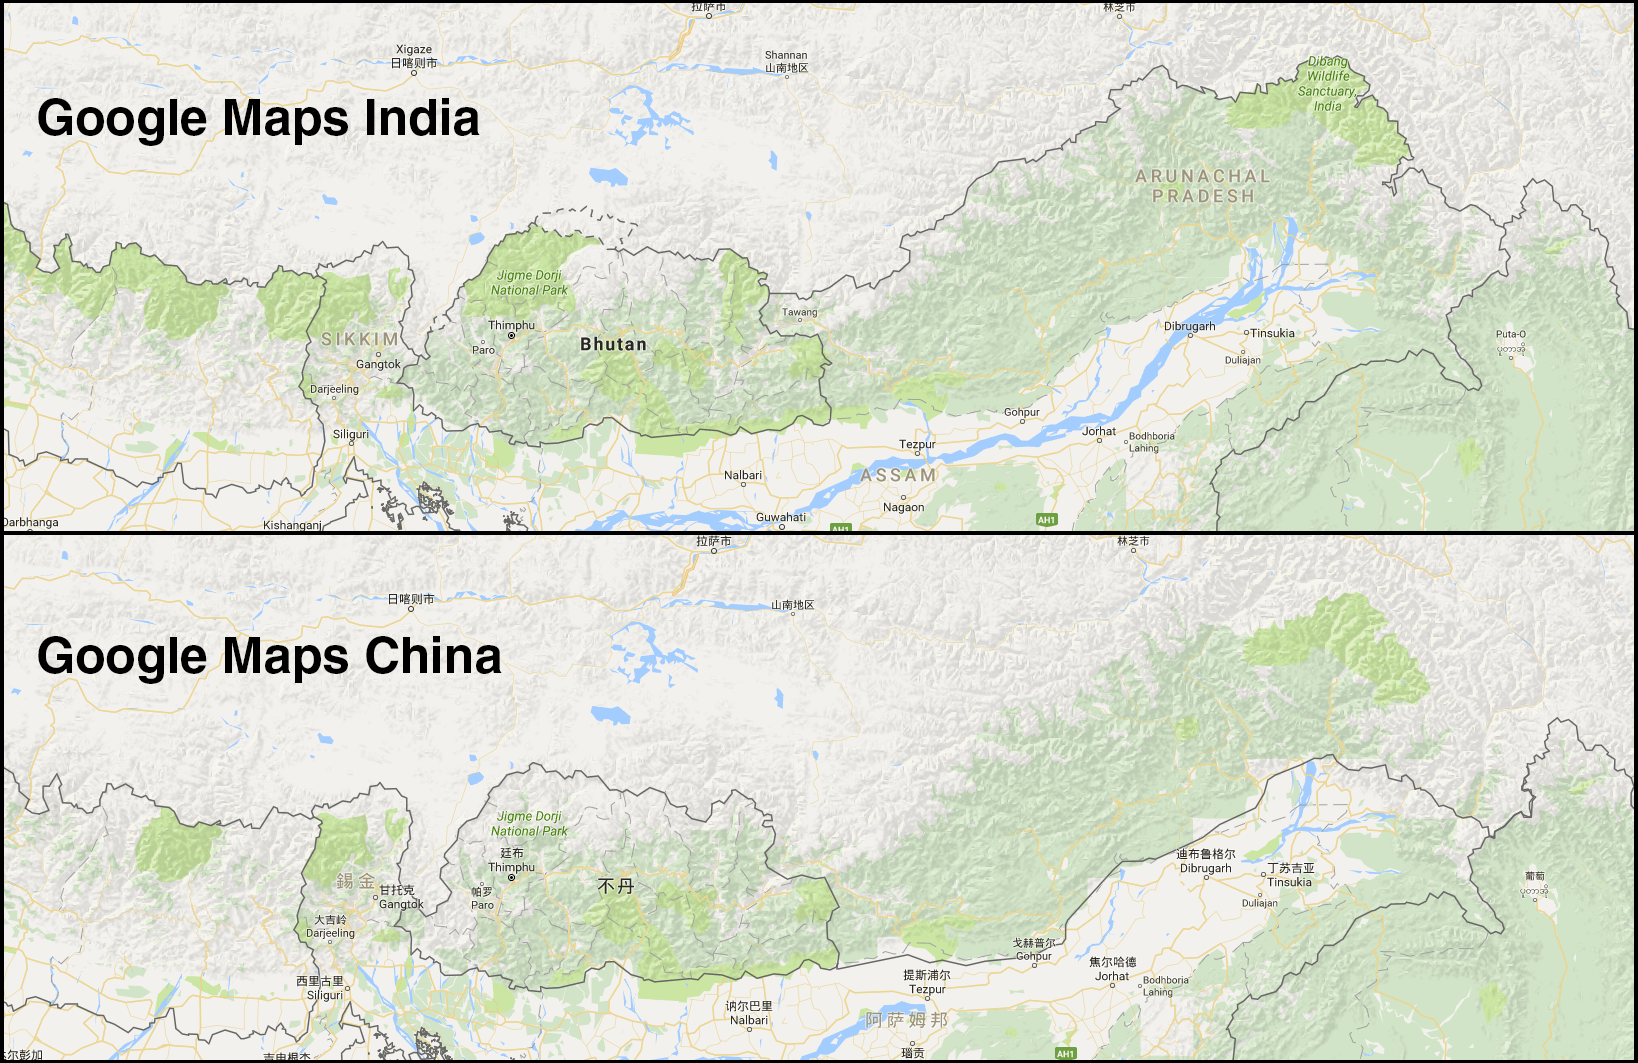 There is Only 1 Shenzhen River, So Why Does Google Maps Show